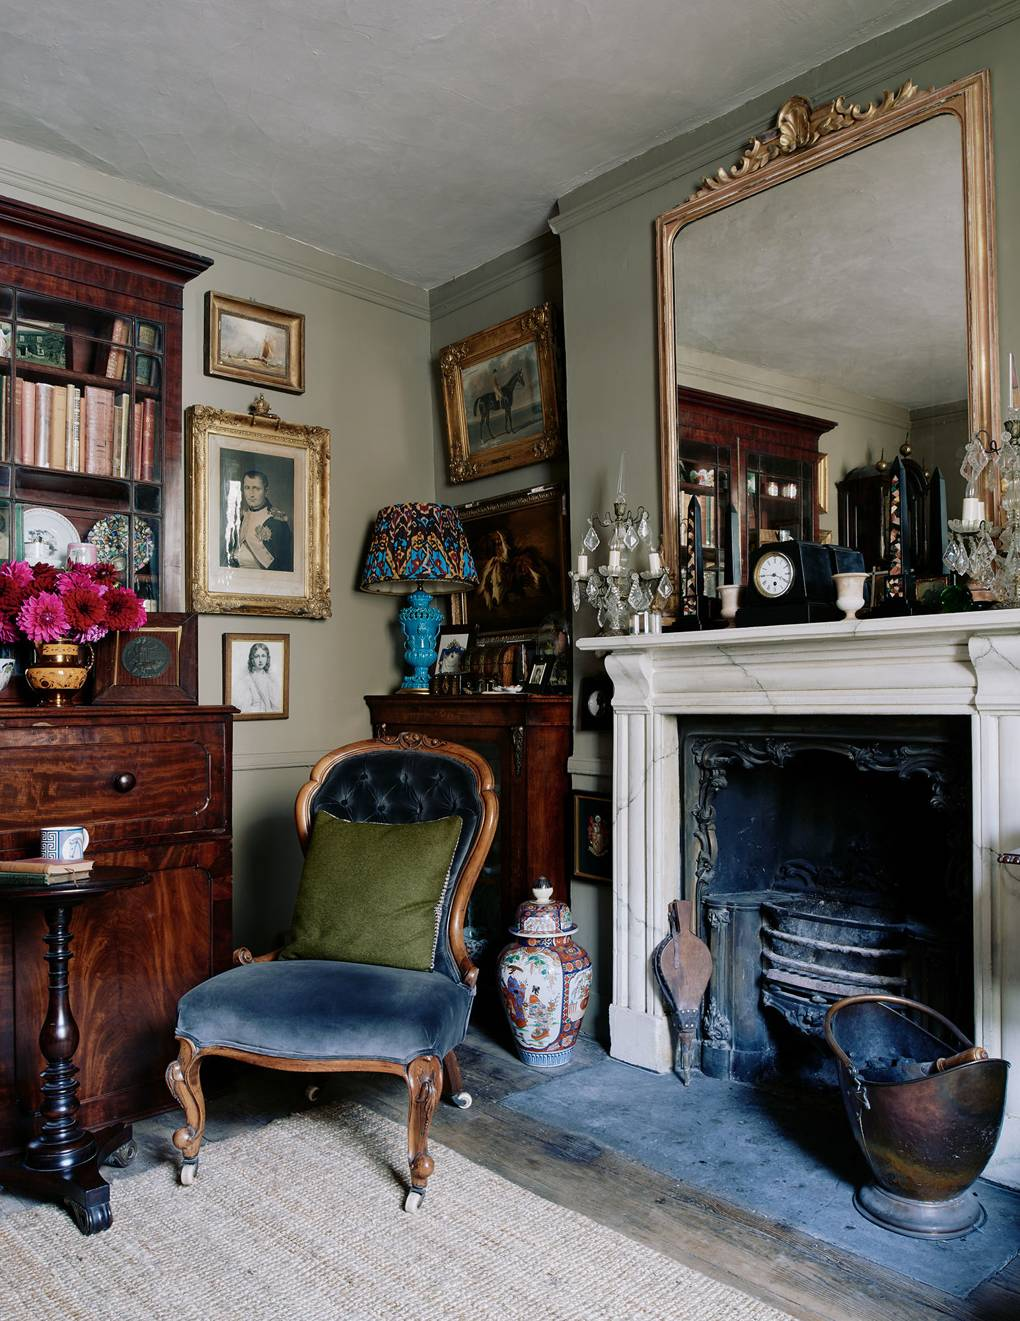 Décor | At Home With: Jack Laver Brister, Frome, Somerset